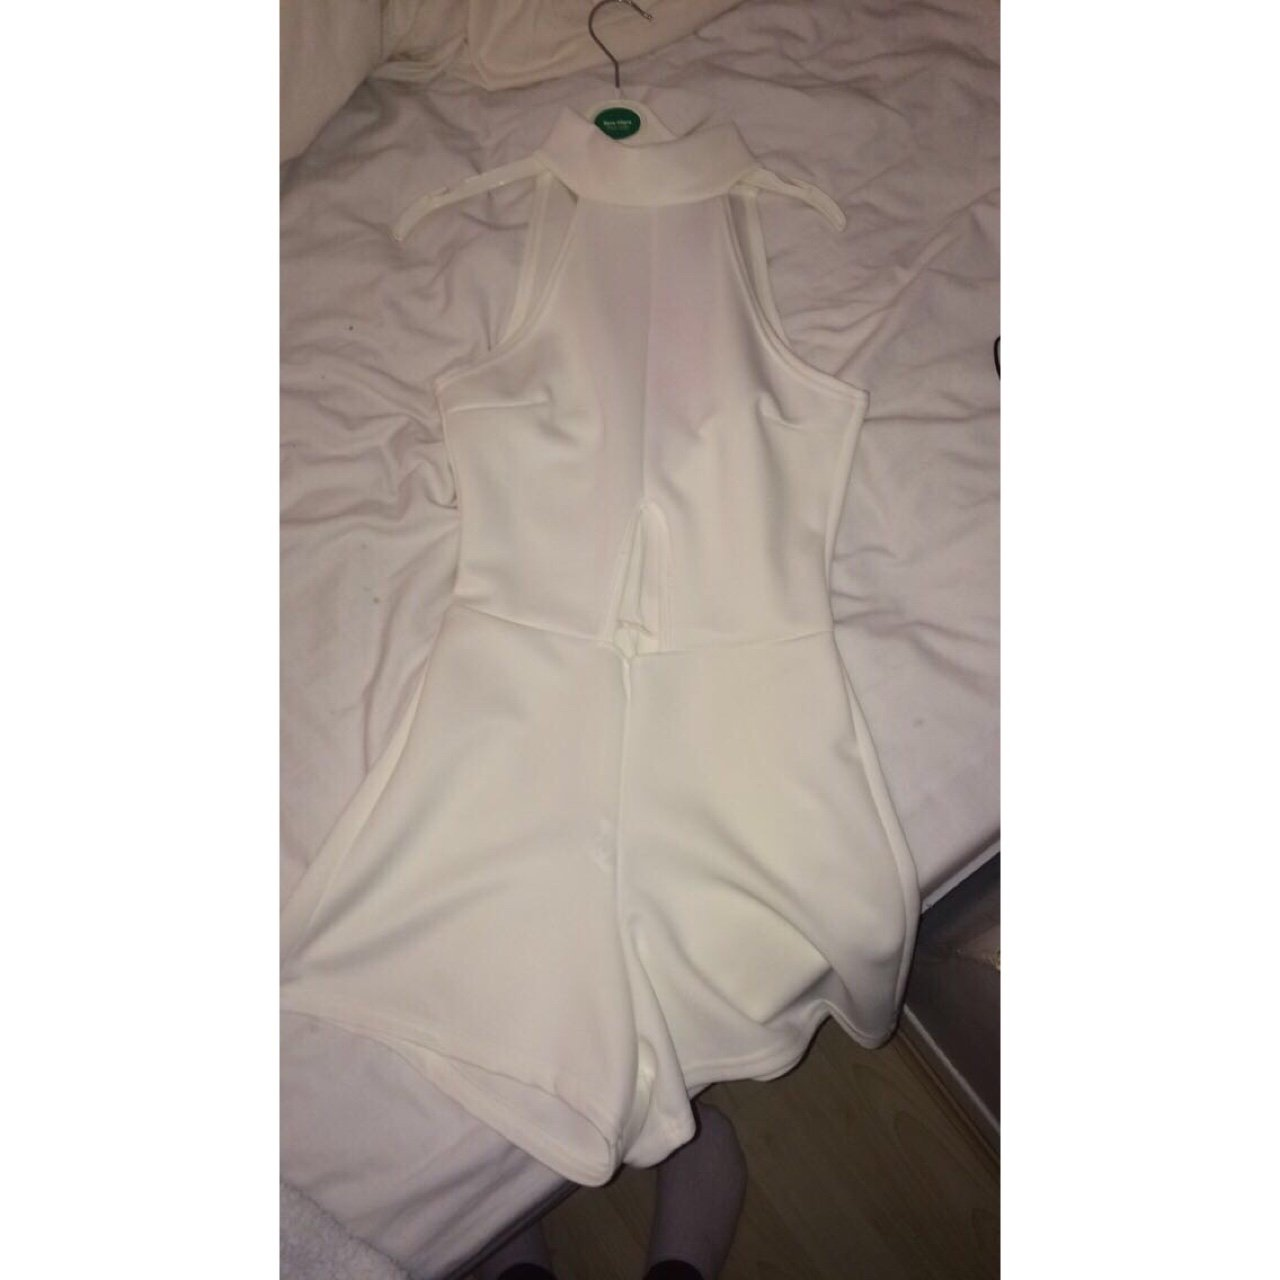 3accff27e3f White High neck playsuit with cut out on belly from boohoo. - Depop